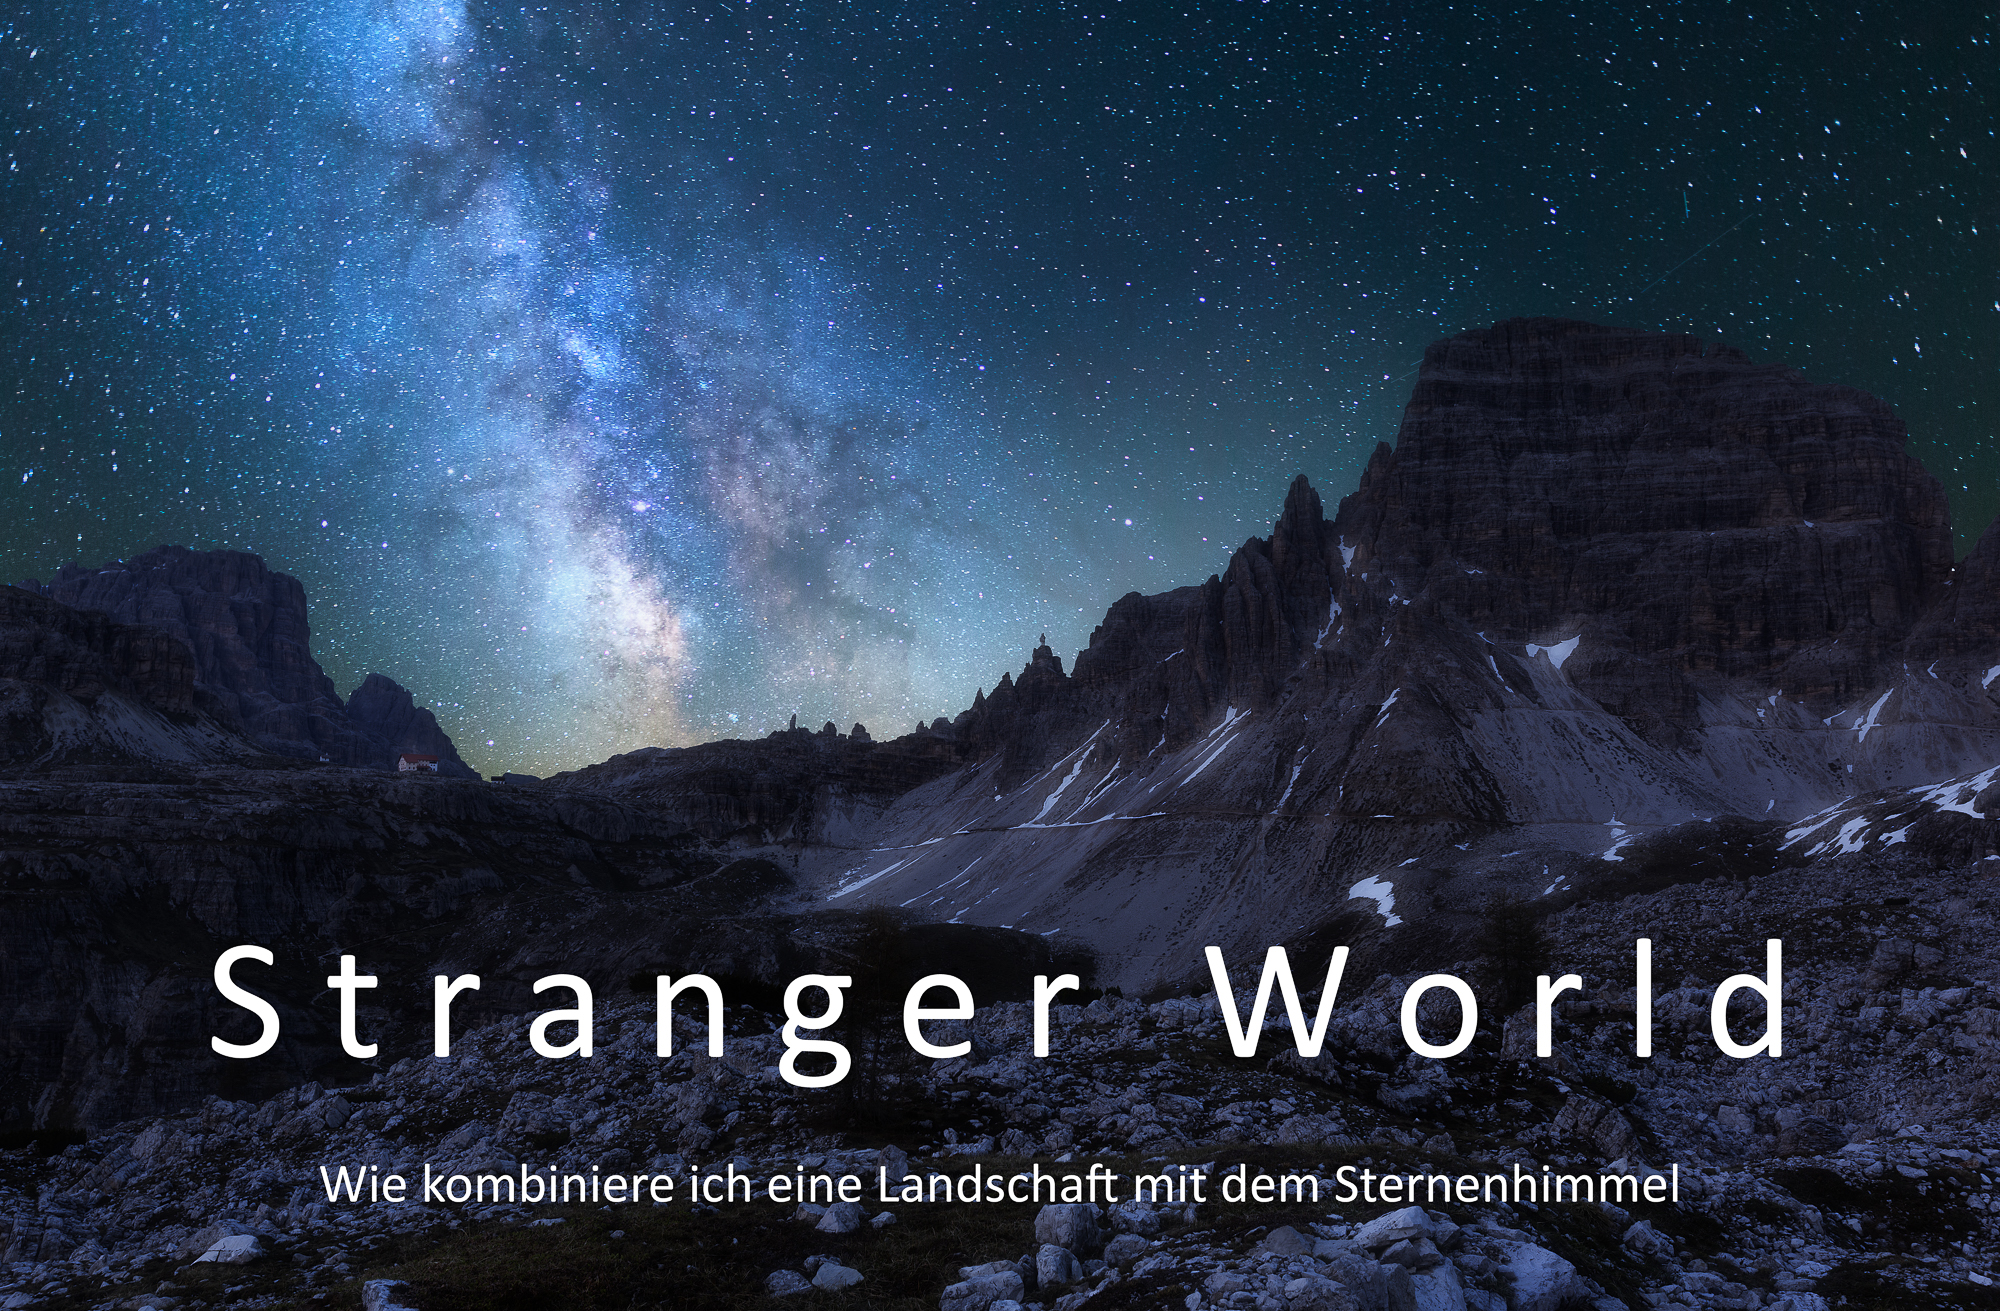 1 Tutorial Timeblending-Milky astrophotography Guide Photoshop Stranger World-German